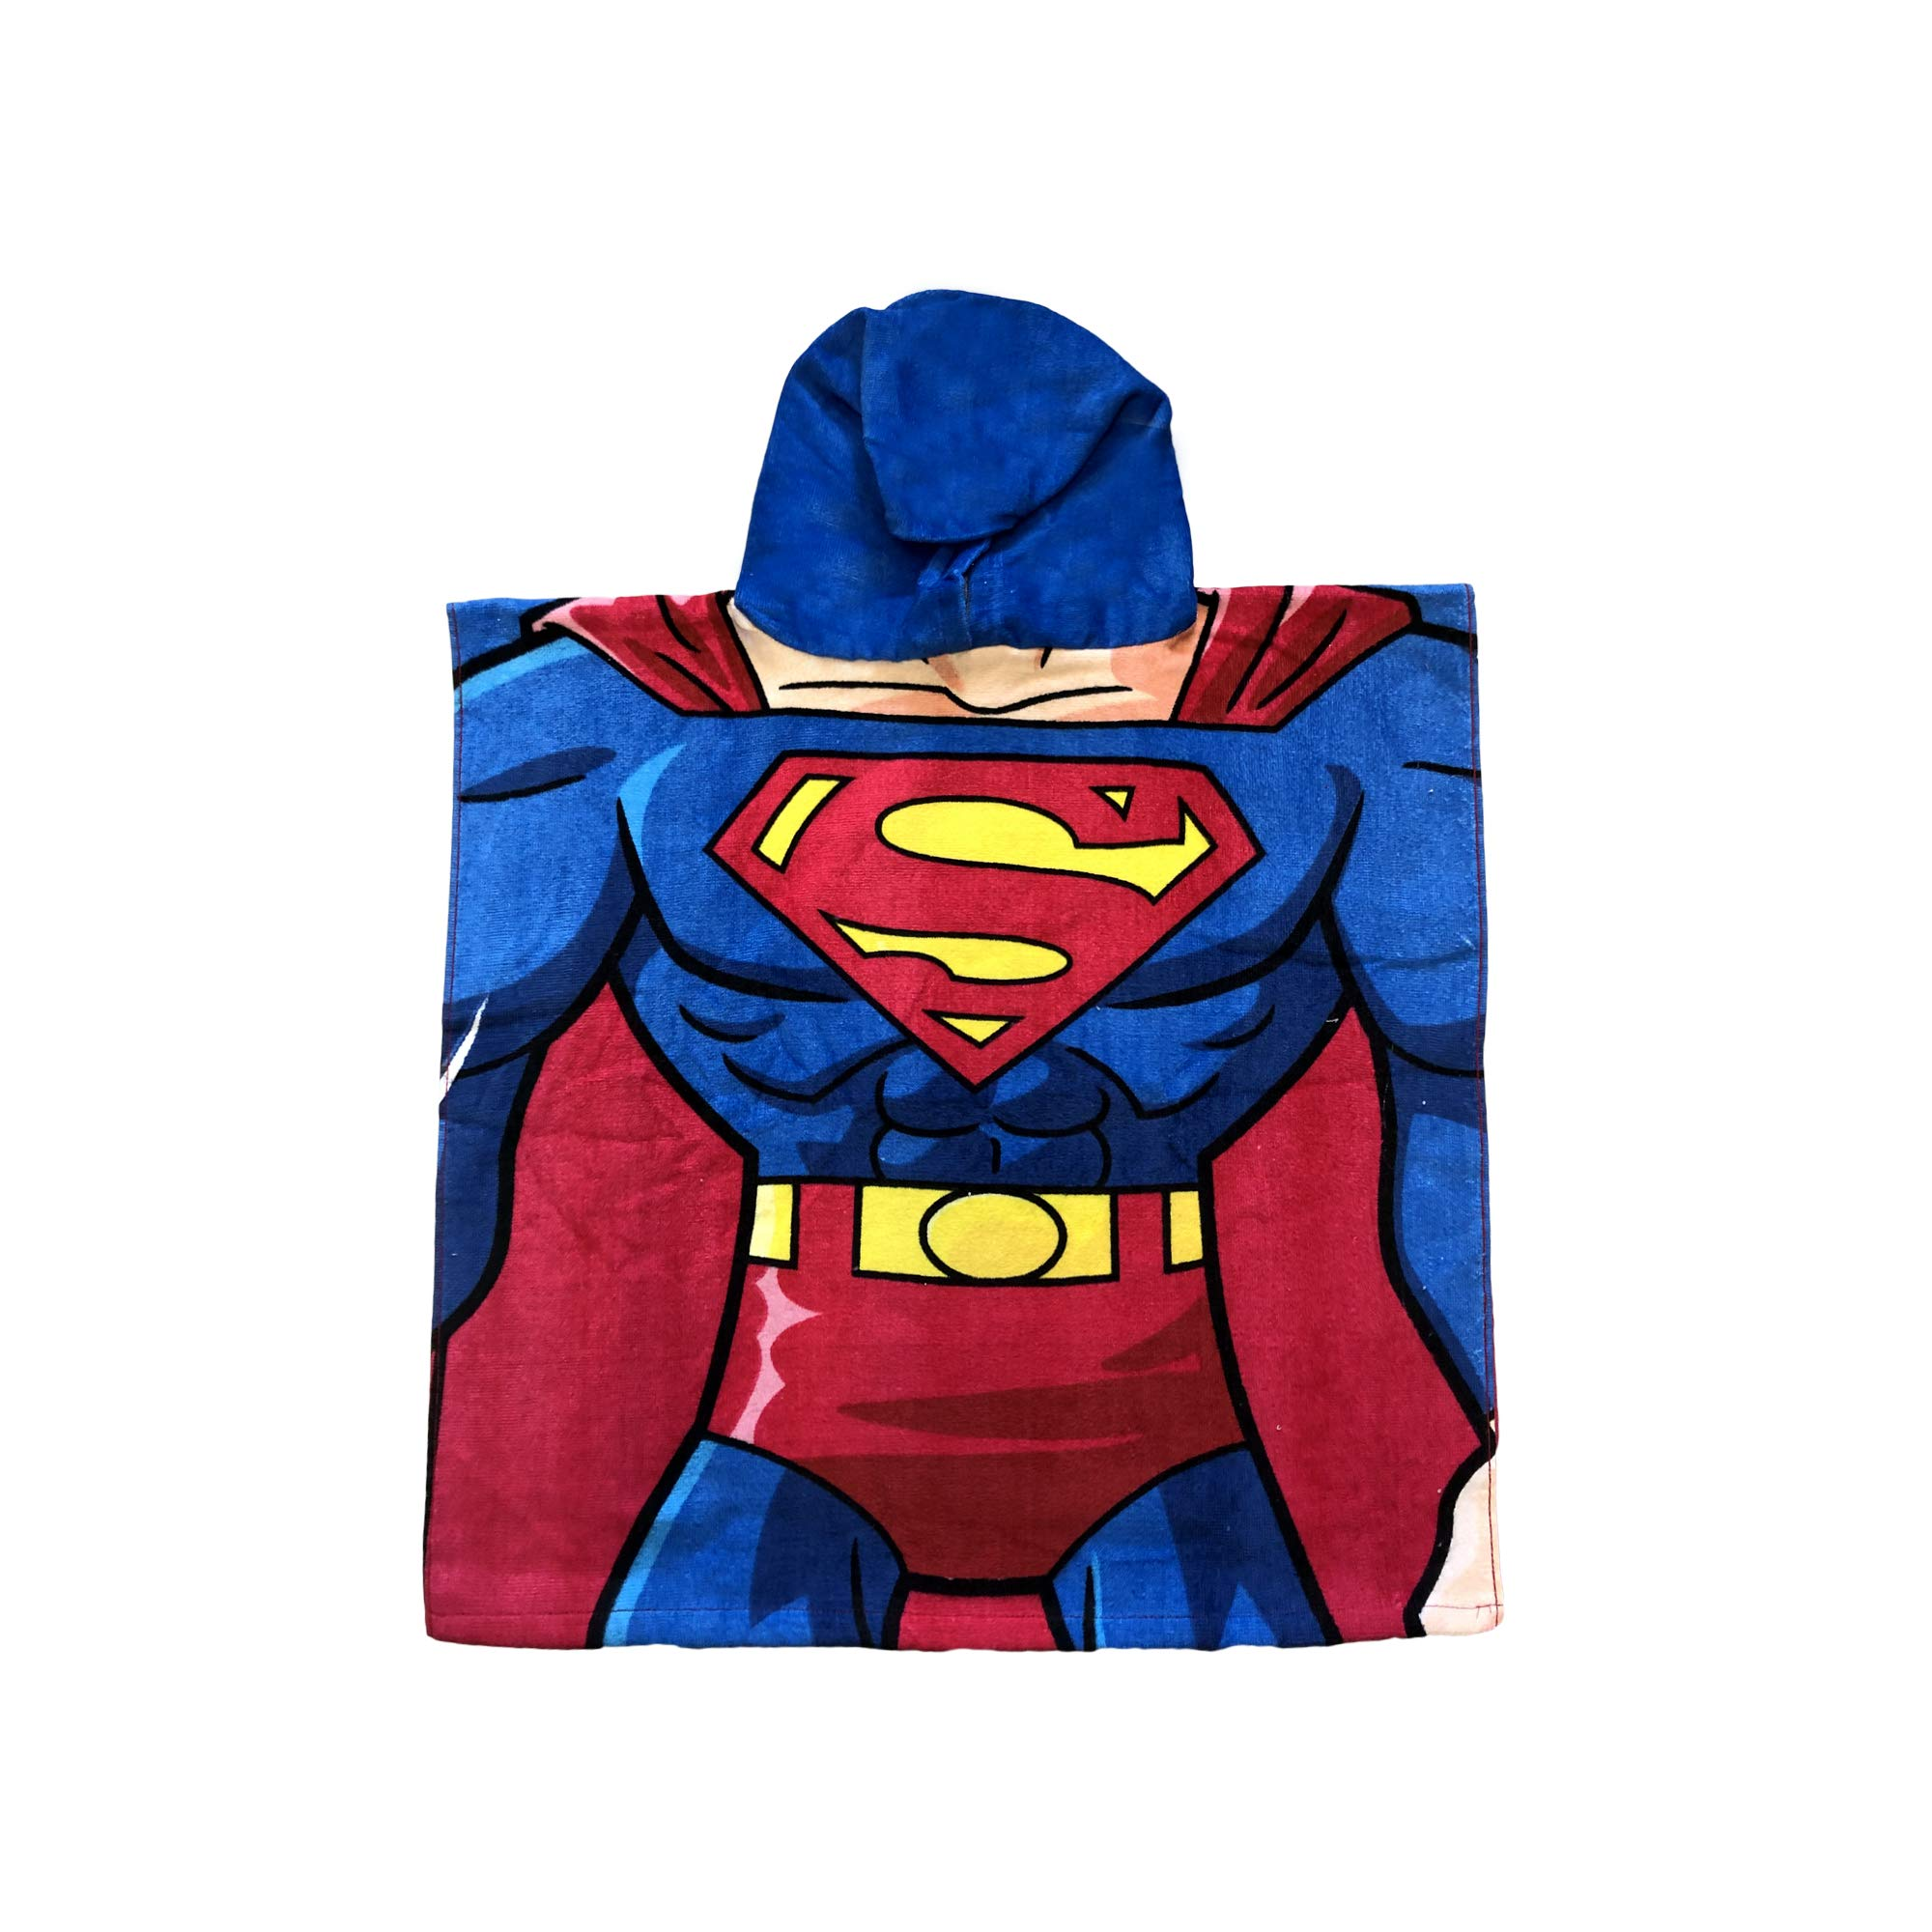 SuperMan Super Hero Body and Chin Muscular Body on The Back, Hooded Poncho Towel